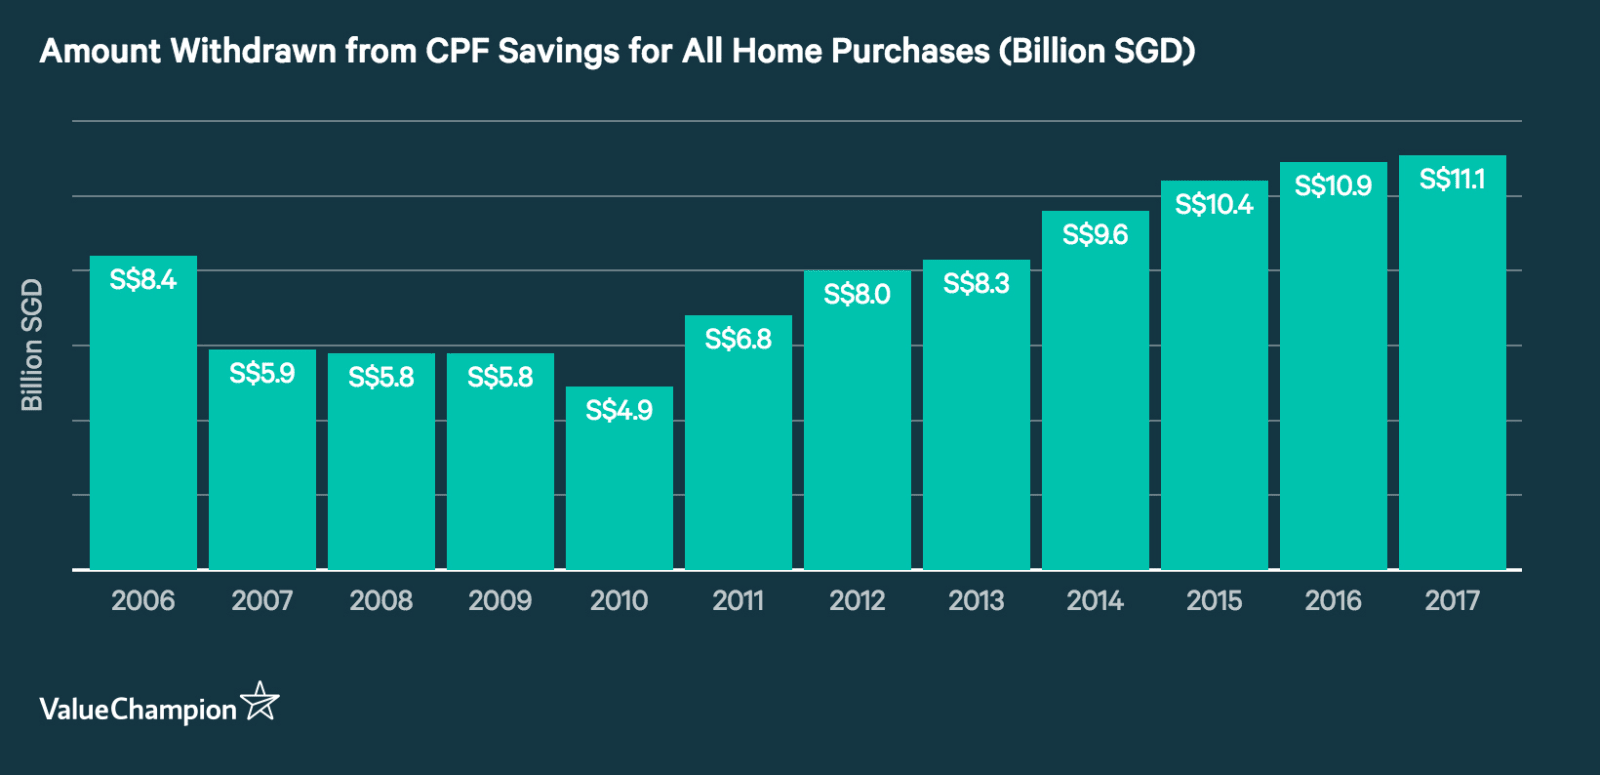 Annual Amount Withdrawn from CPF Savings for Home Purchases Billion SGD